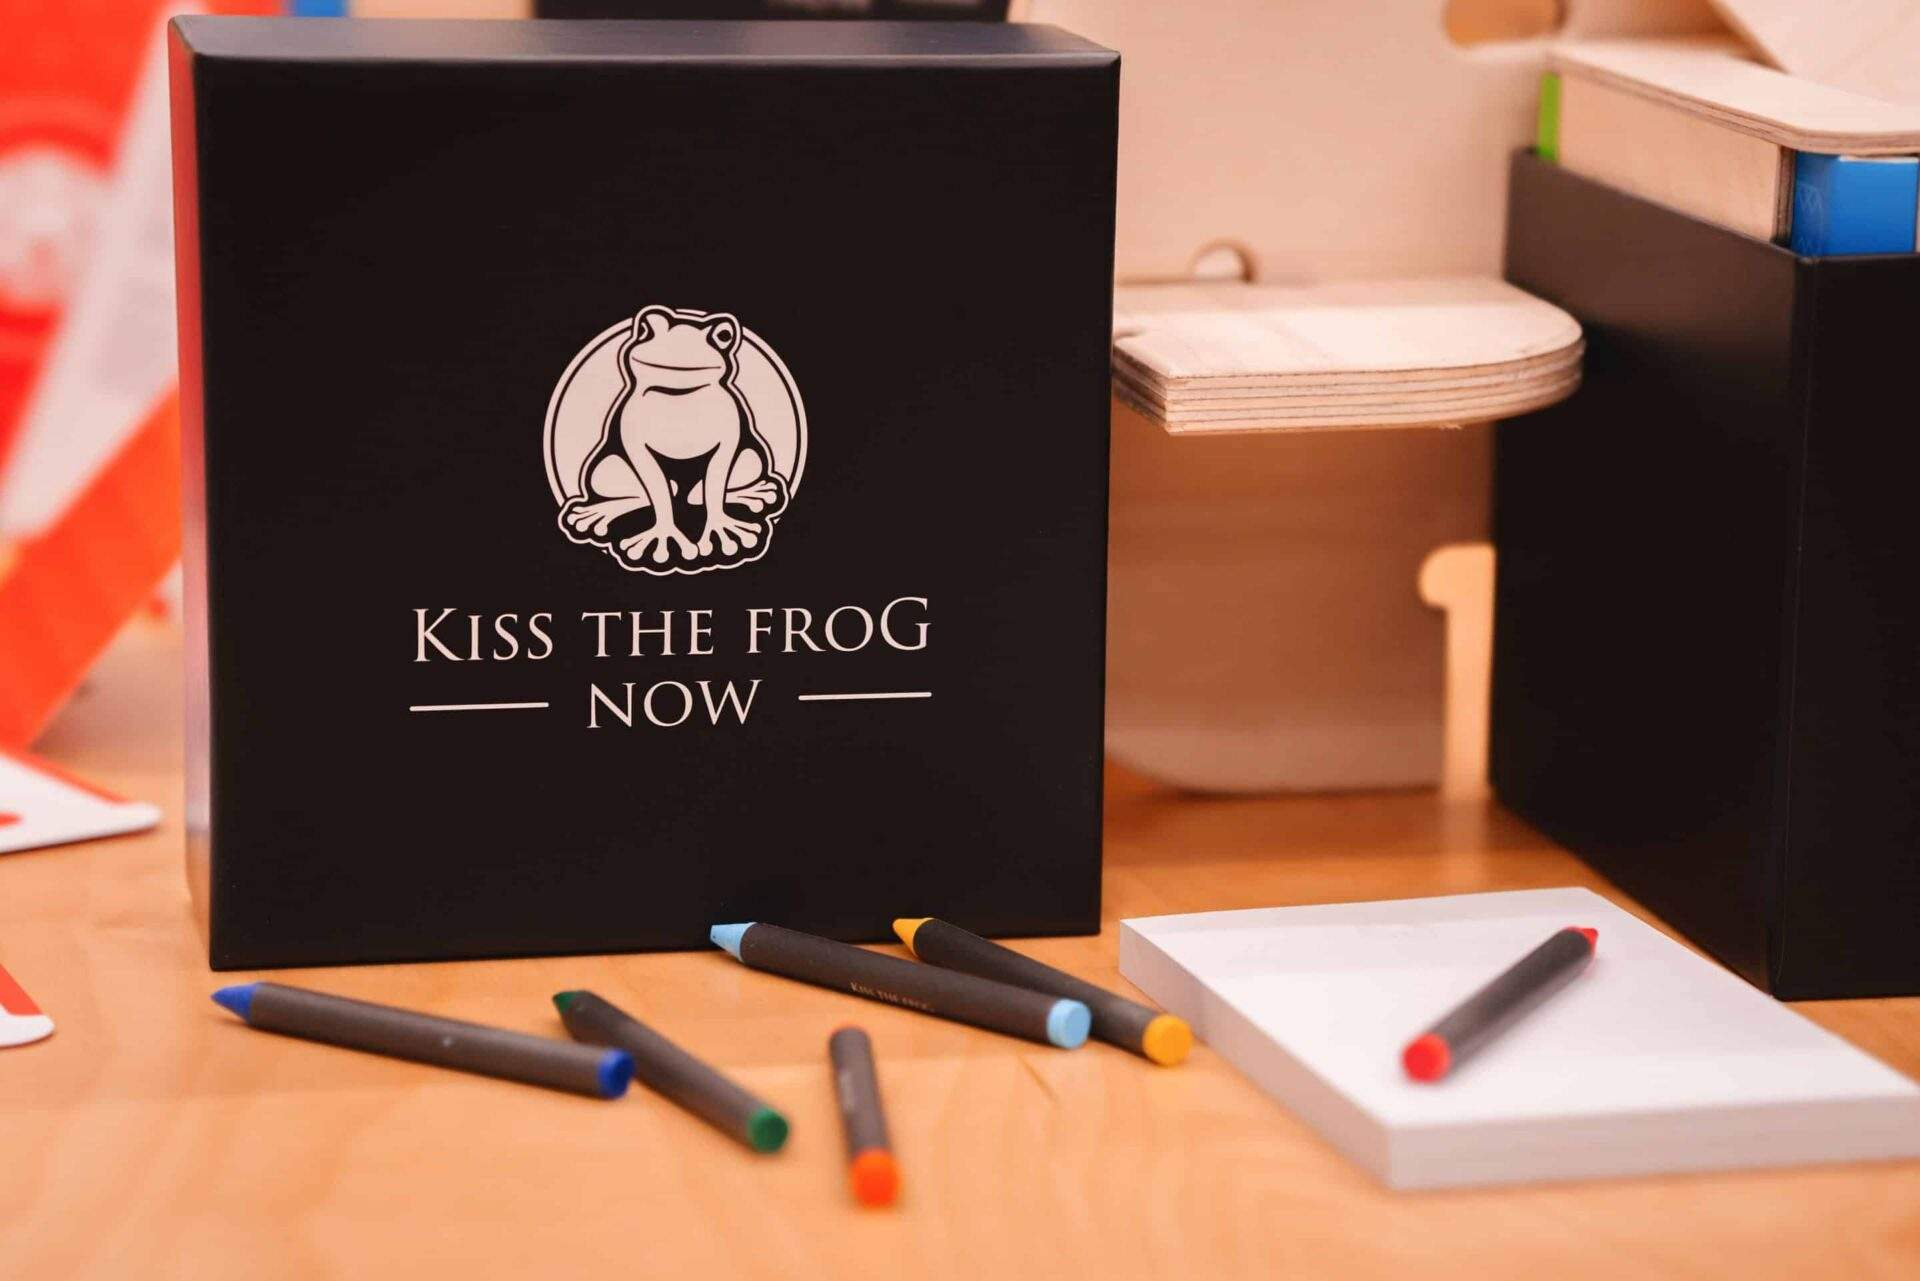 KissTheFrogNOW crayons